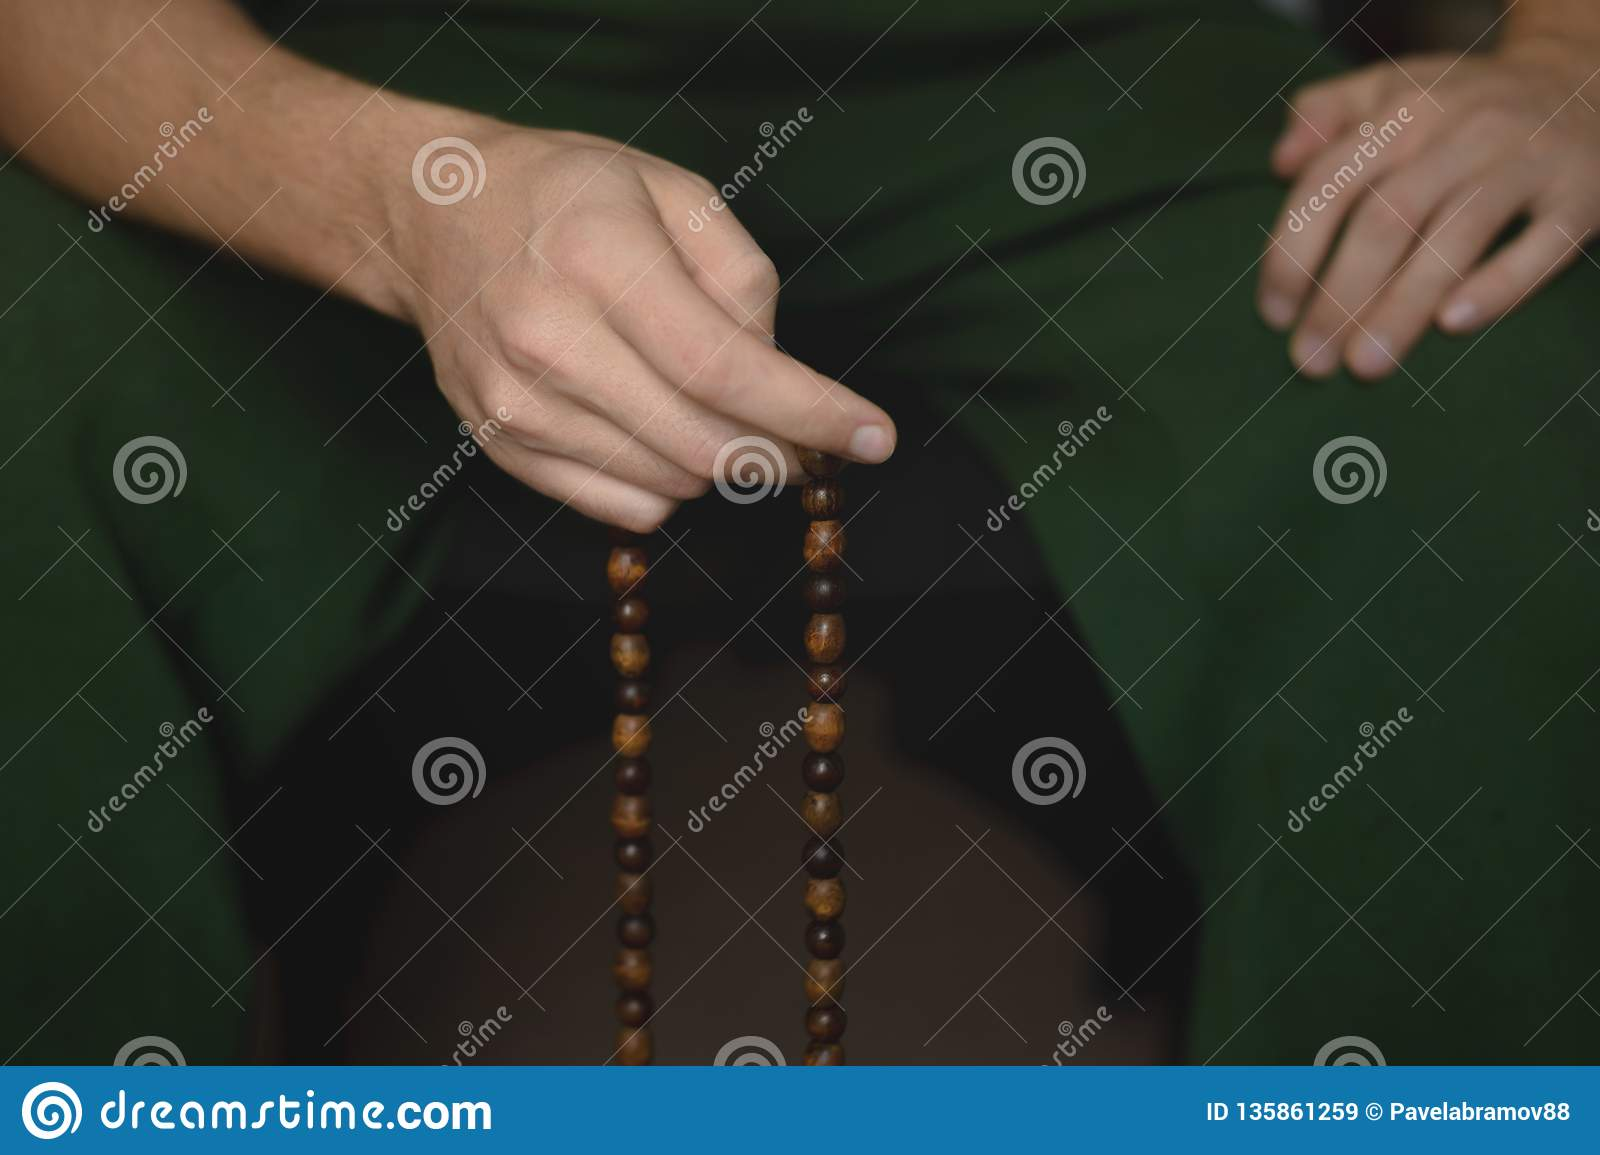 Prayer beads for meditation in men`s hands. Peace, awareness and mindfulness